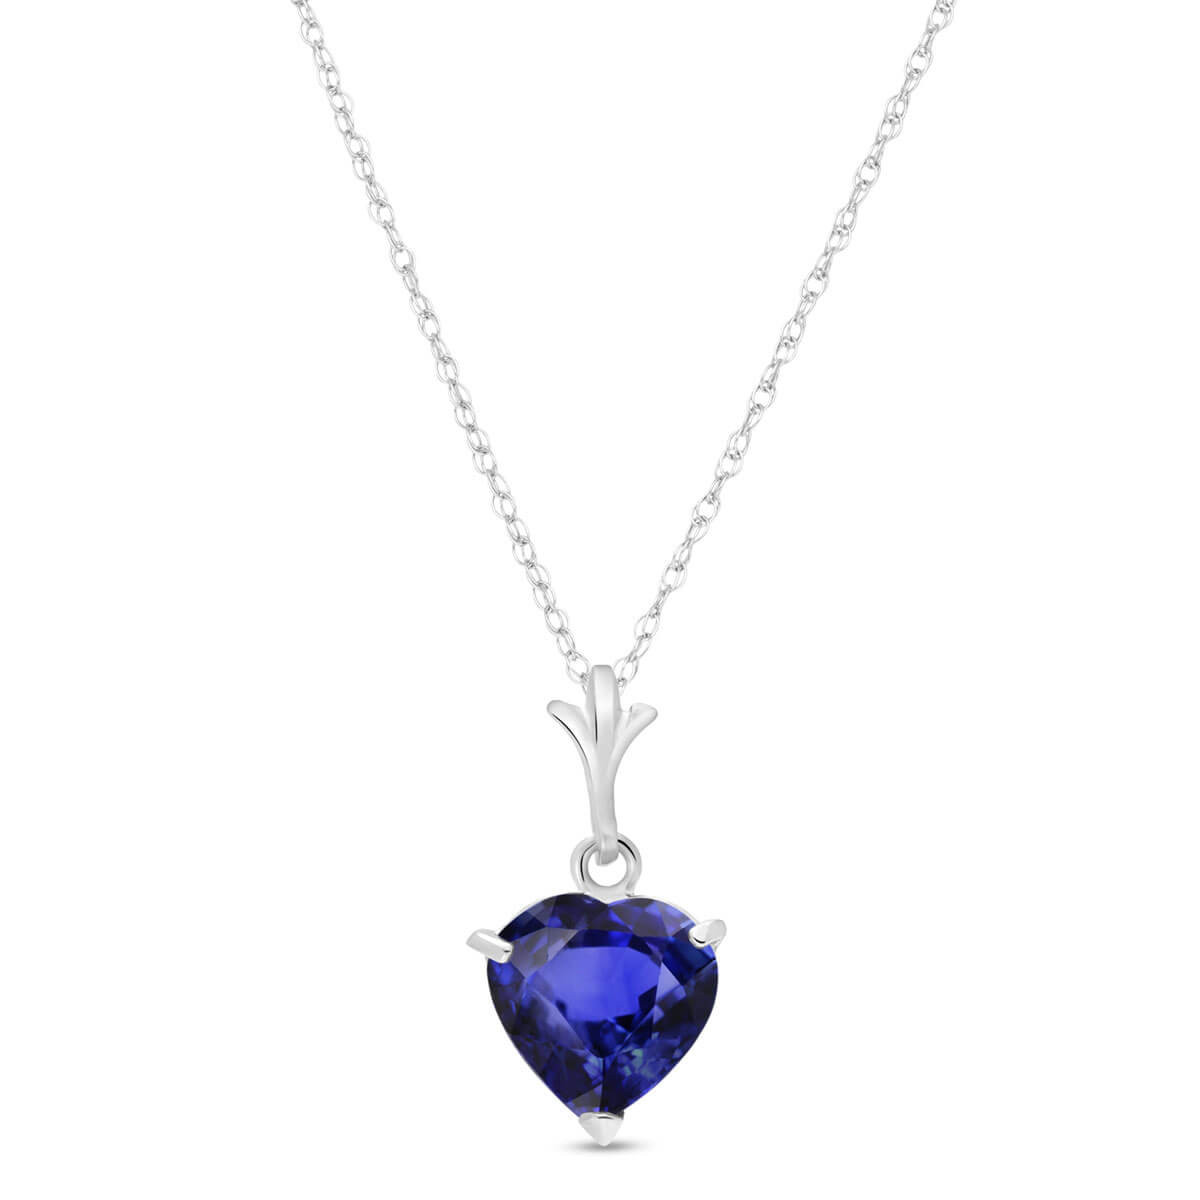 Sapphire Heart Pendant Necklace 1.55 ct in 9ct White Gold